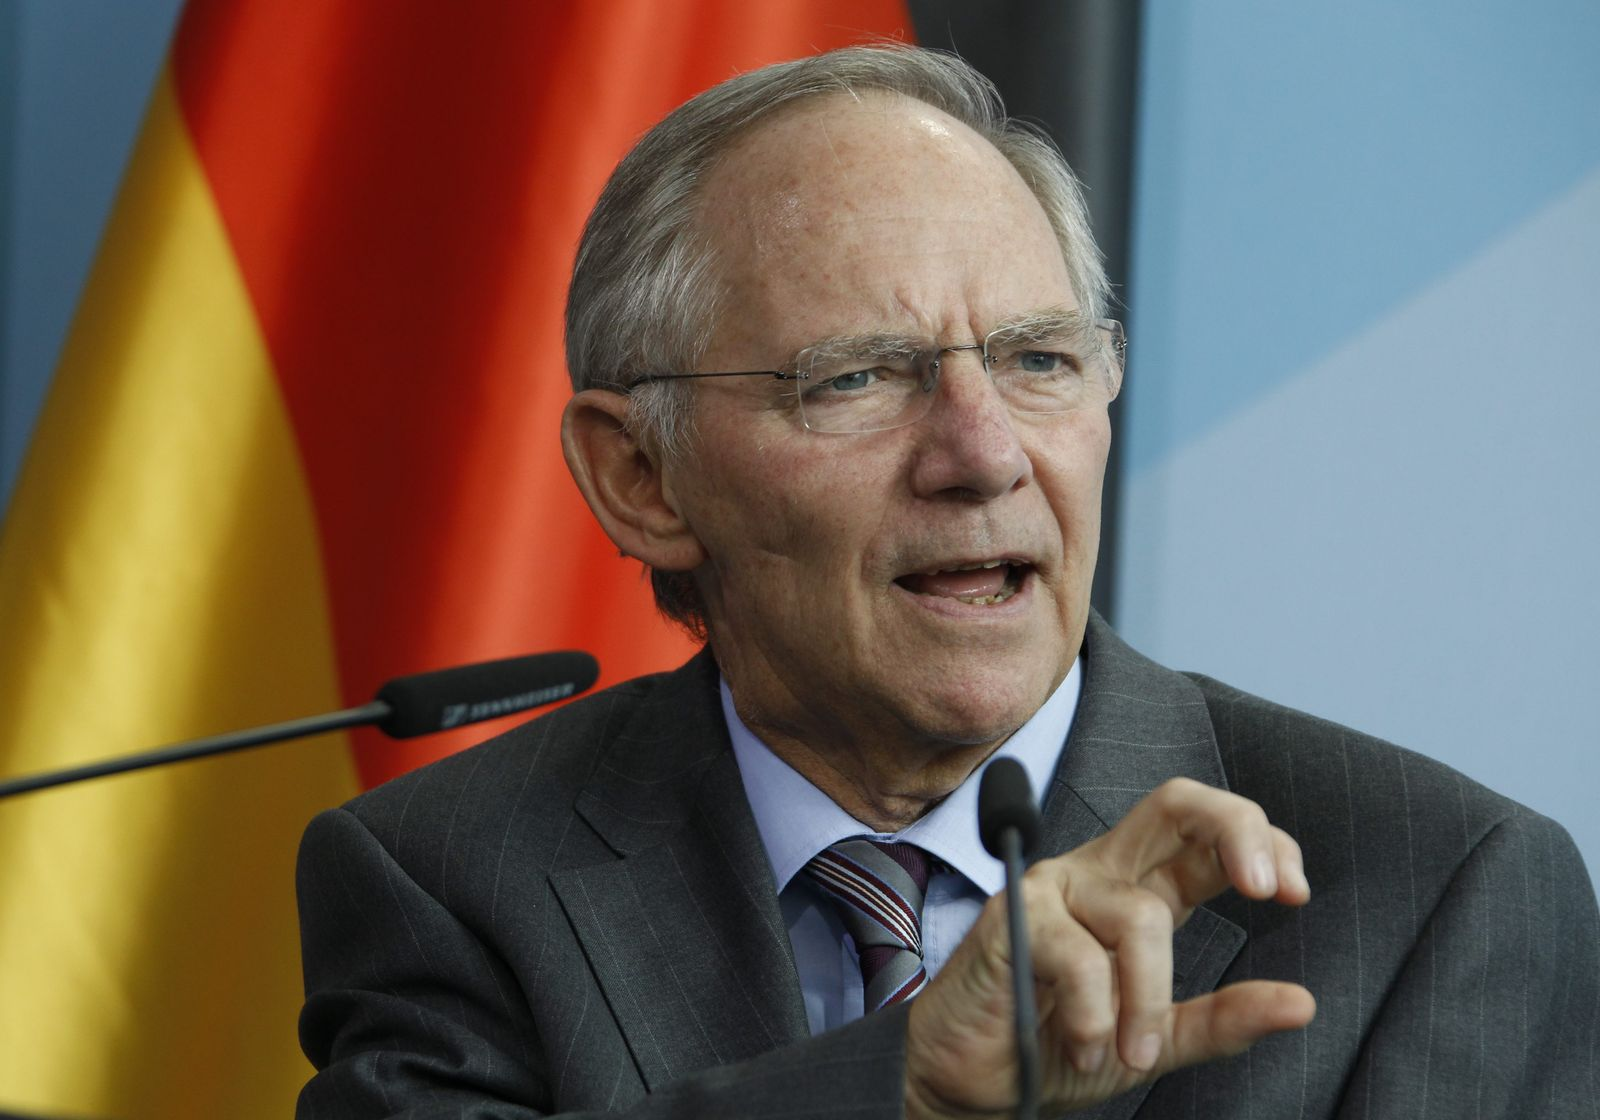 Germany Schäuble